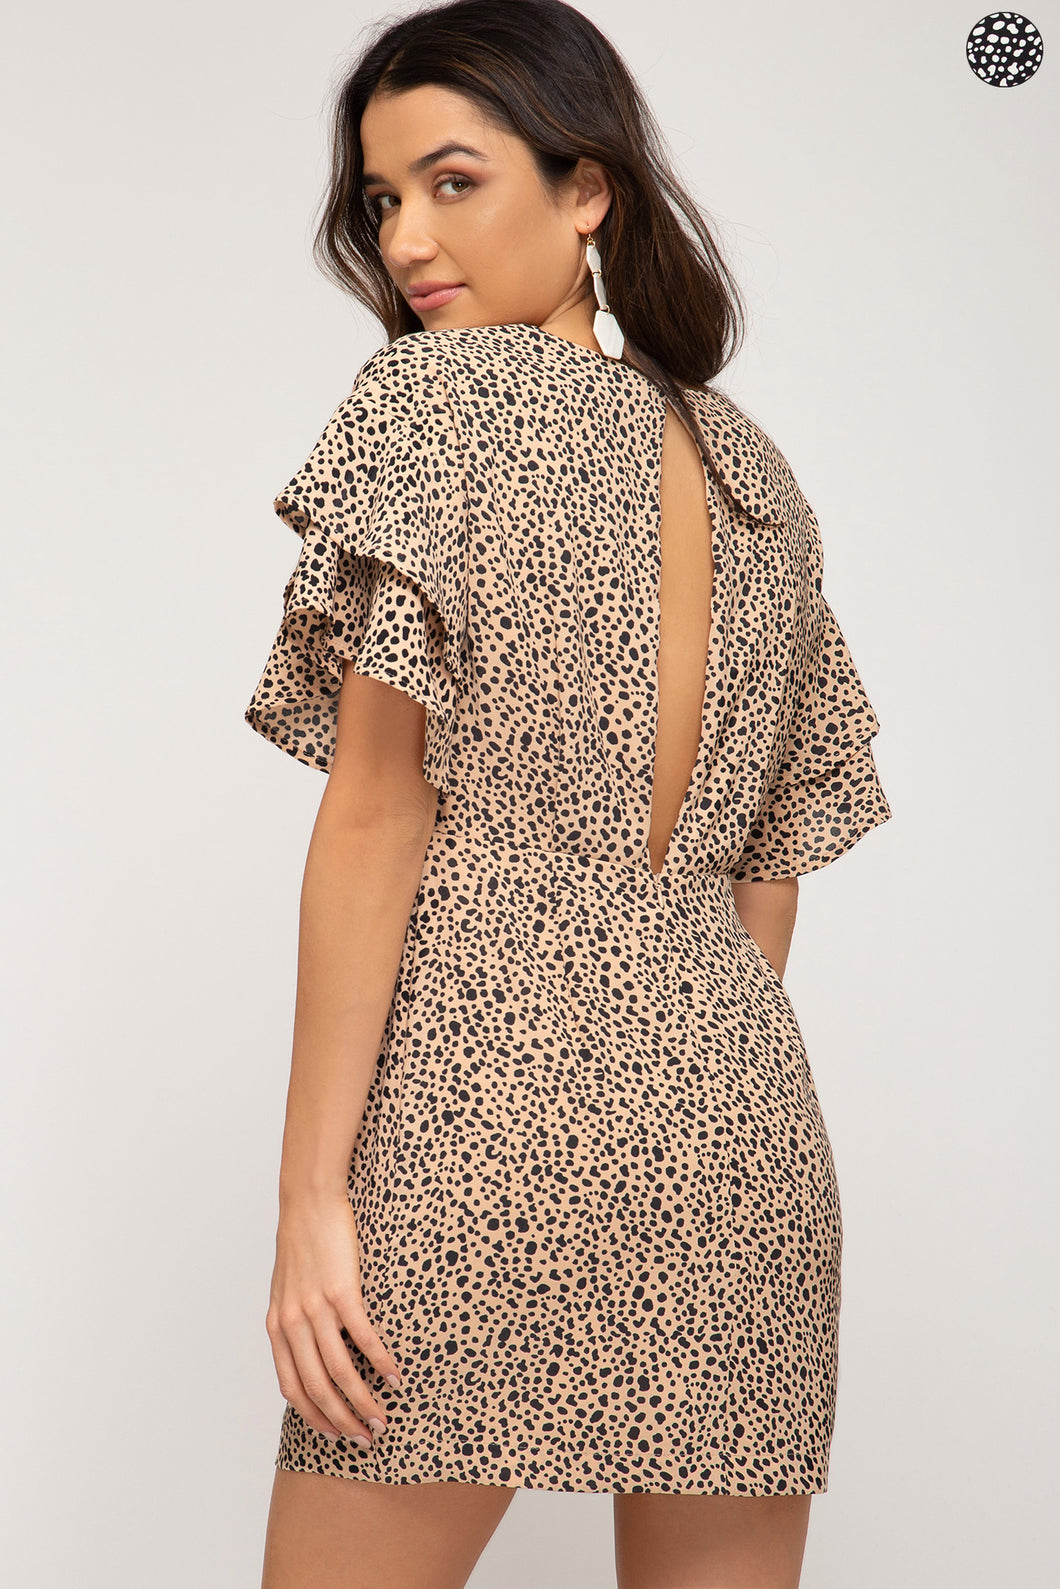 CITY CHEETAH CUB DRESS